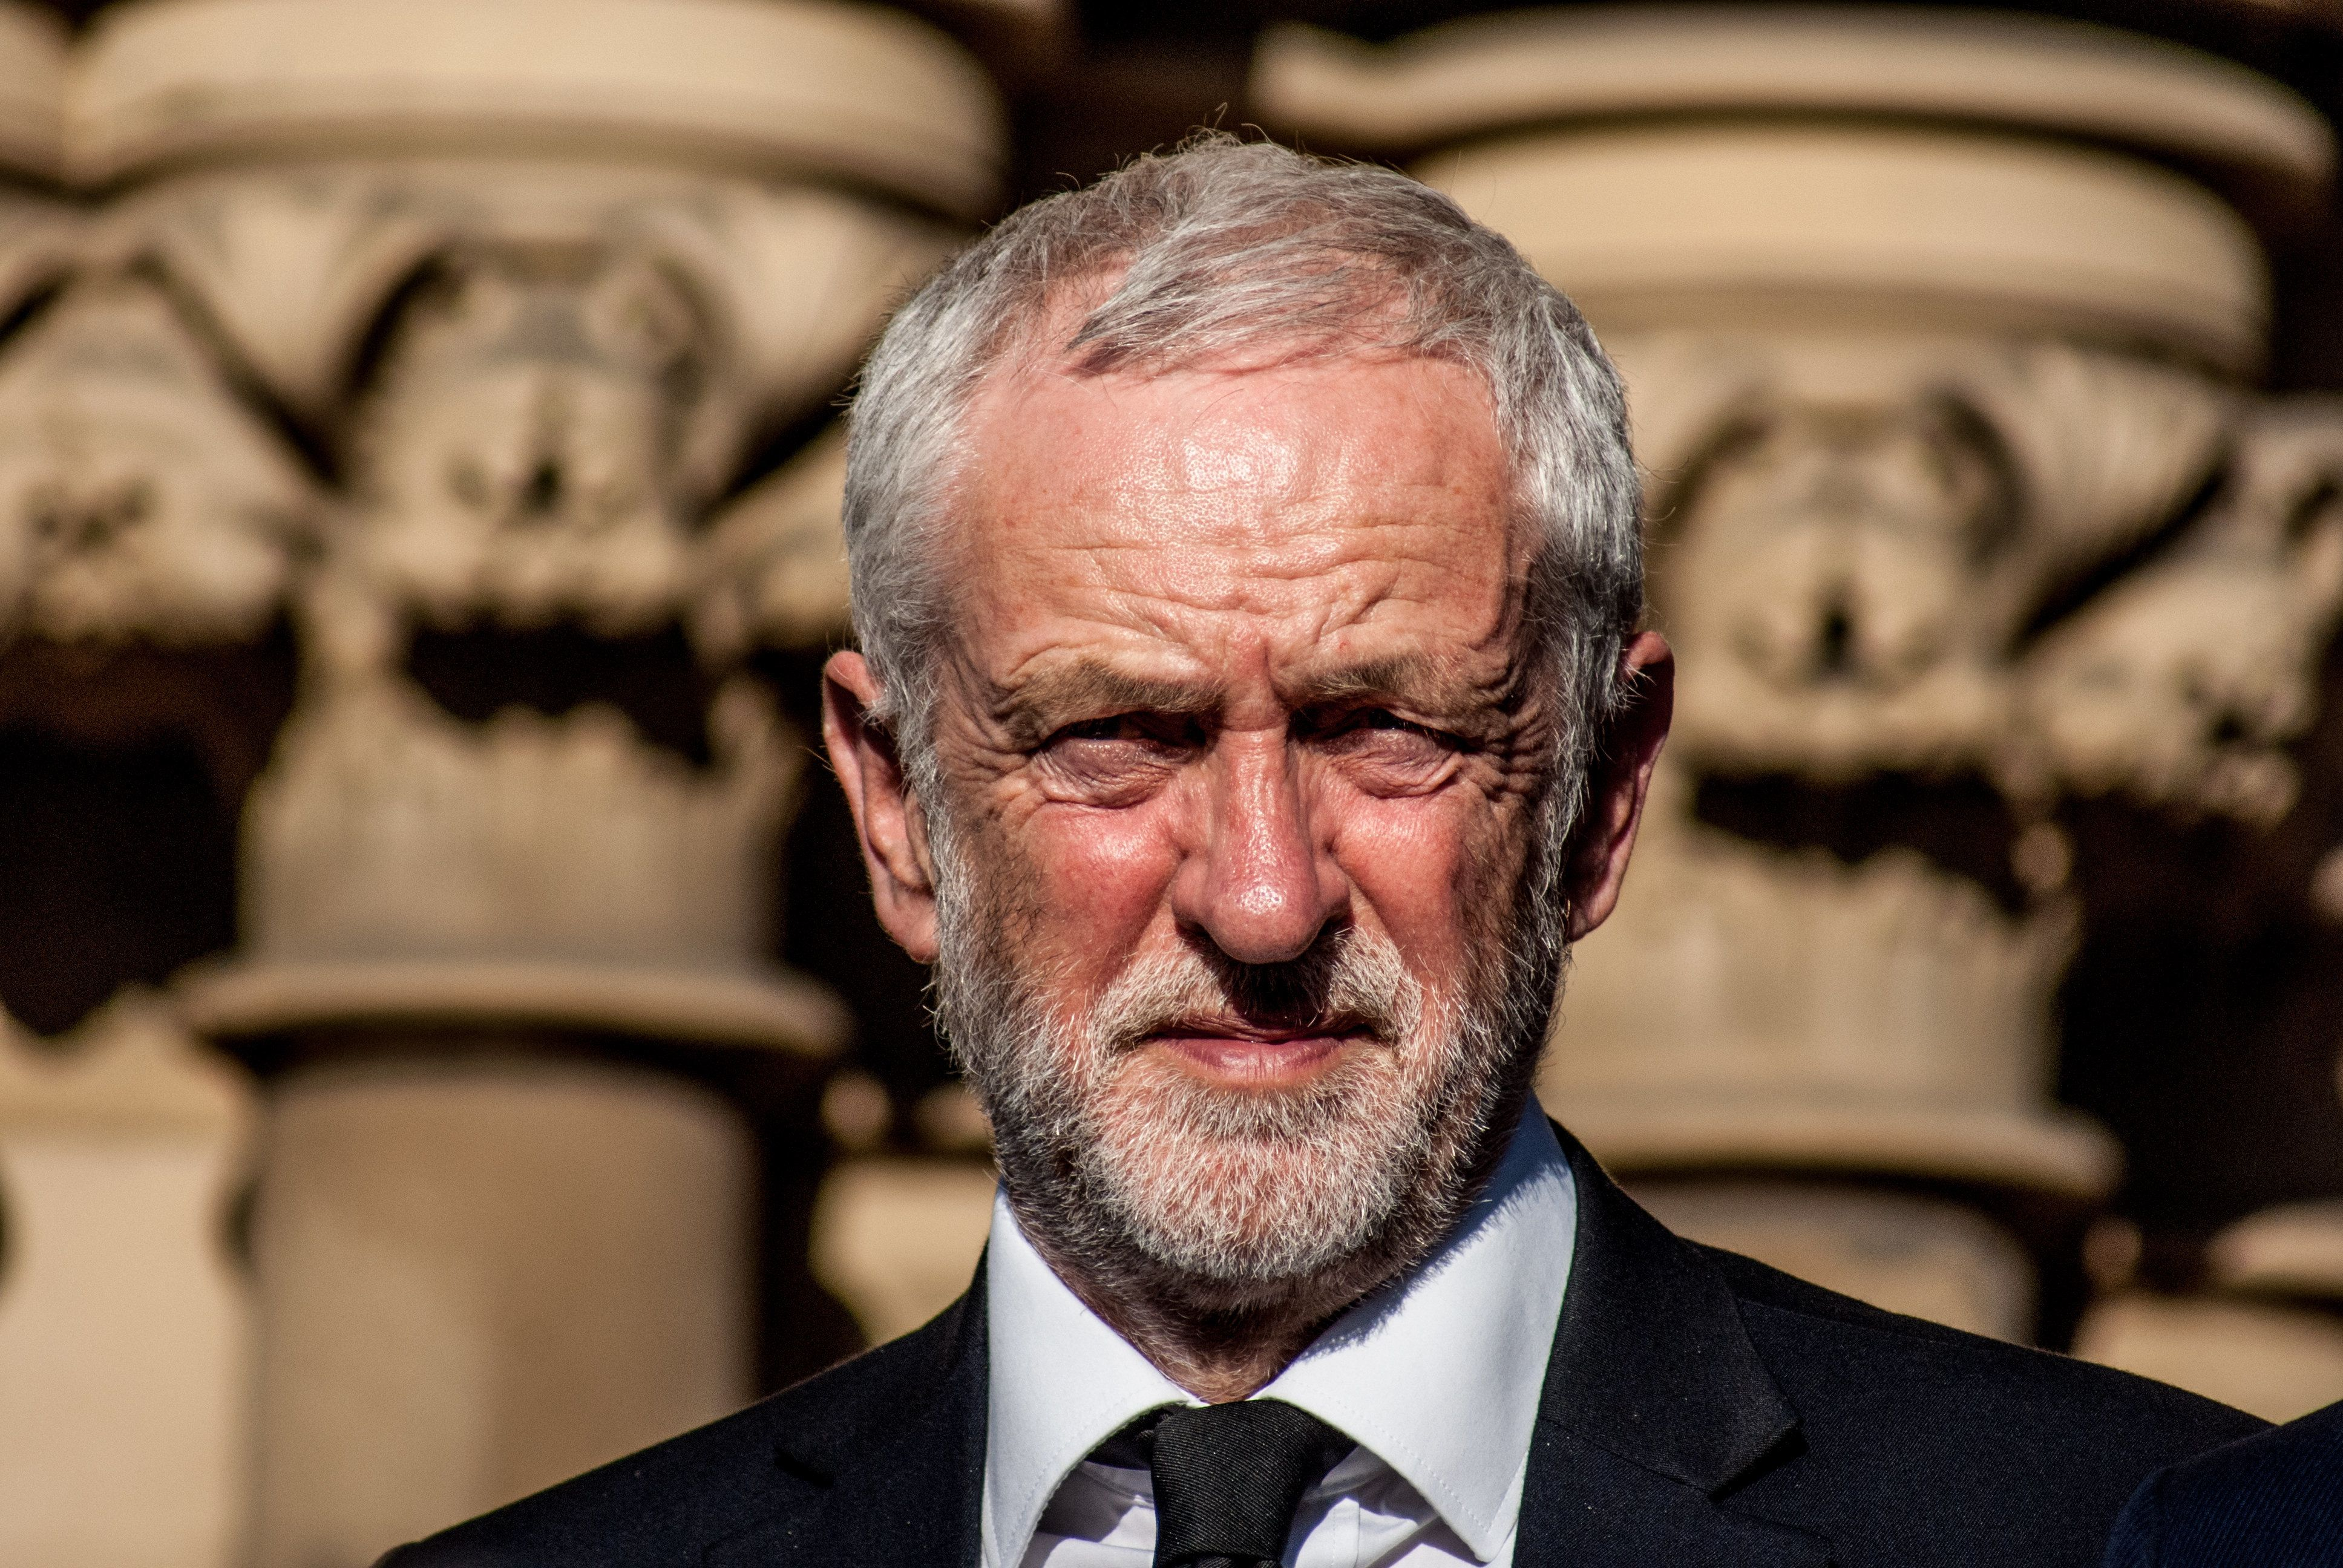 Jeremy Corbyn Vows To Tackle Causes Of Terrorism In Wake Of Manchester